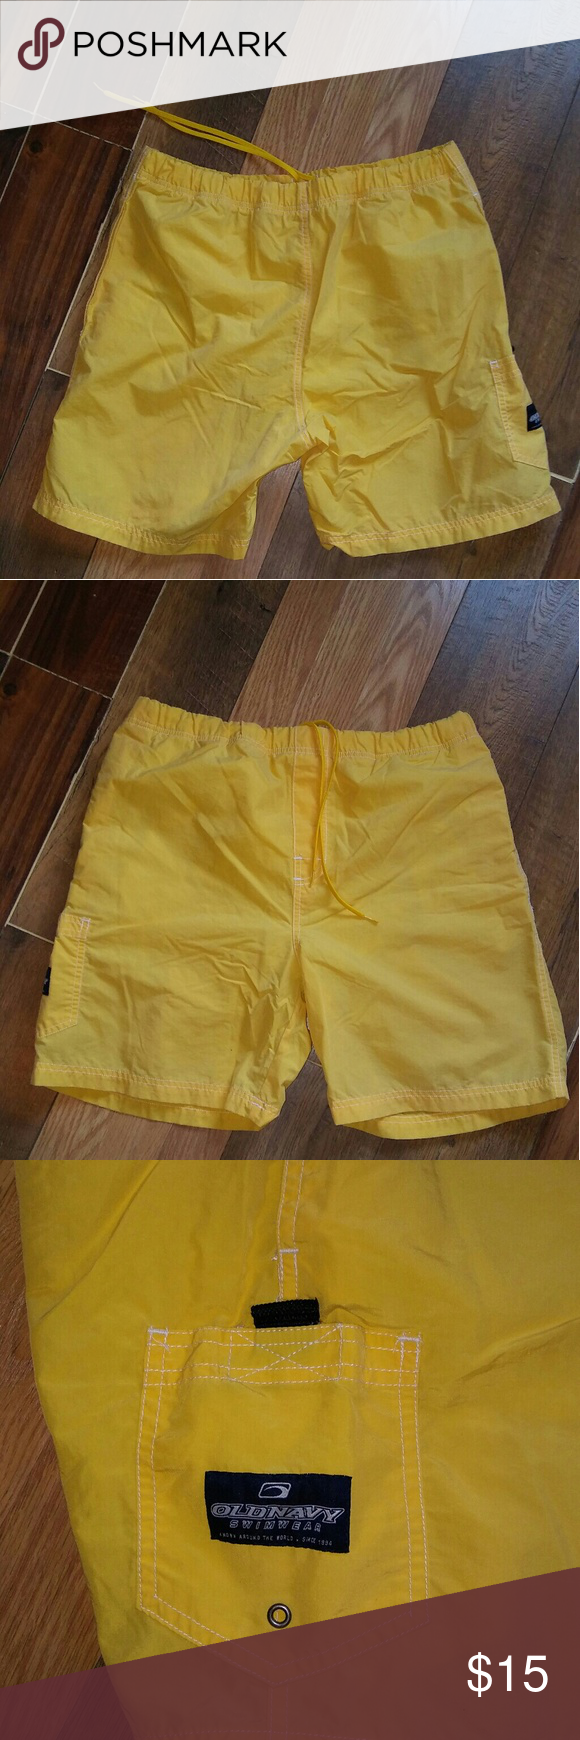 Men's Old Navy Lined Swim Shorts Size Med. Yellow. Excellent condition. 100% Nylon. Drawstring waist. Old Navy Swim